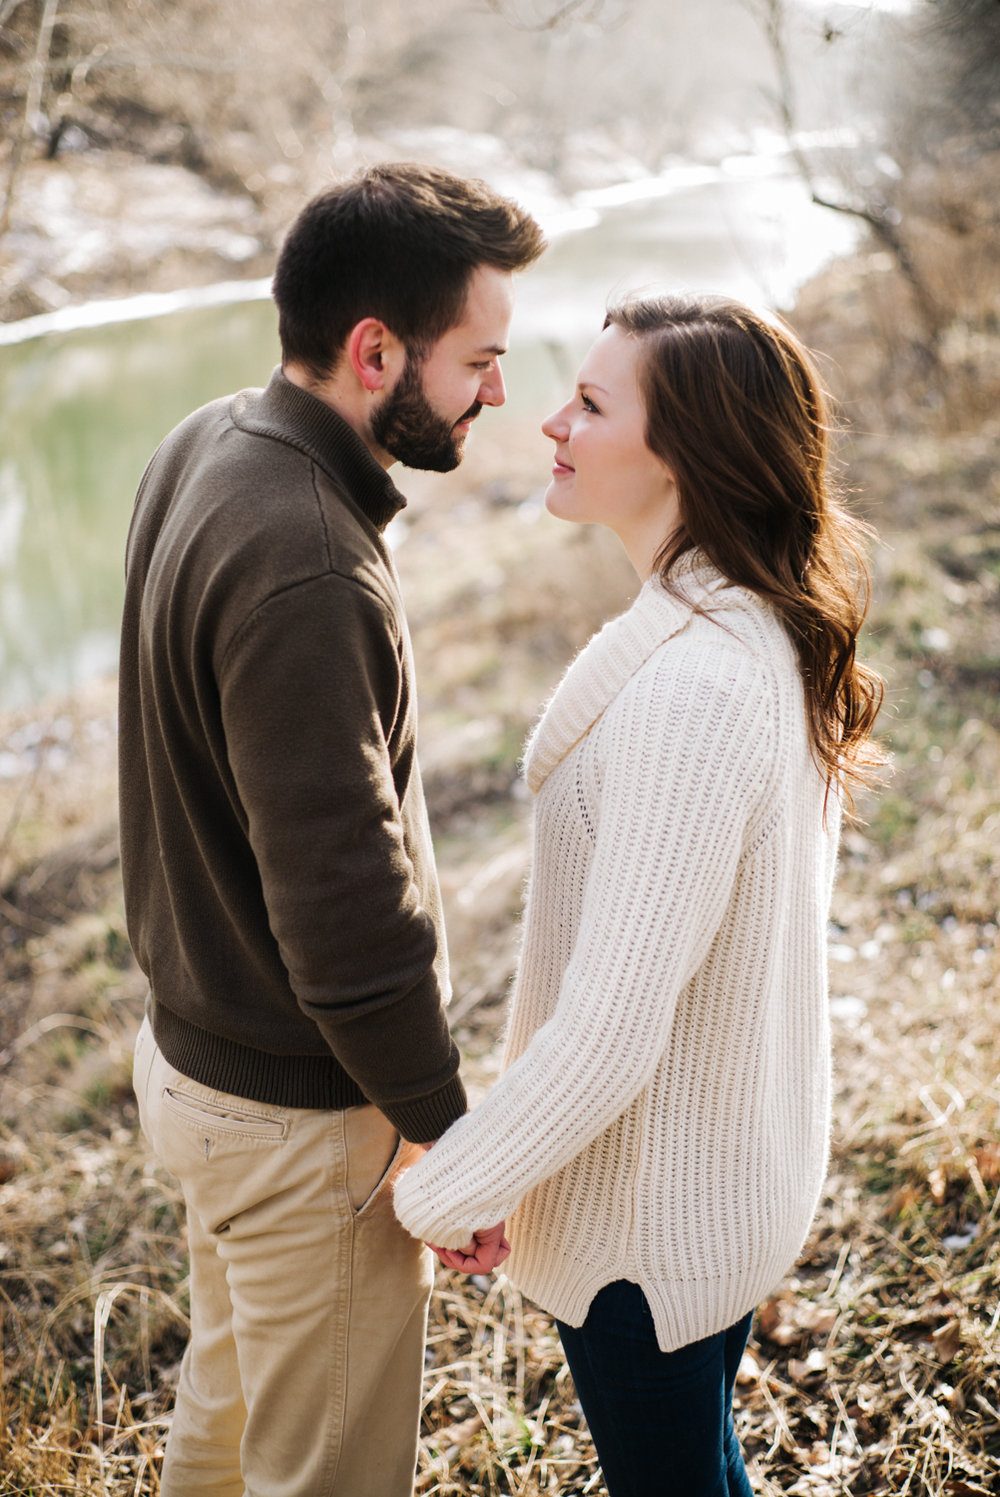 Wichita, Kansas Engagement Photographer - Neal Dieker - Wichita, Kansas Wedding Photographer-120.jpg